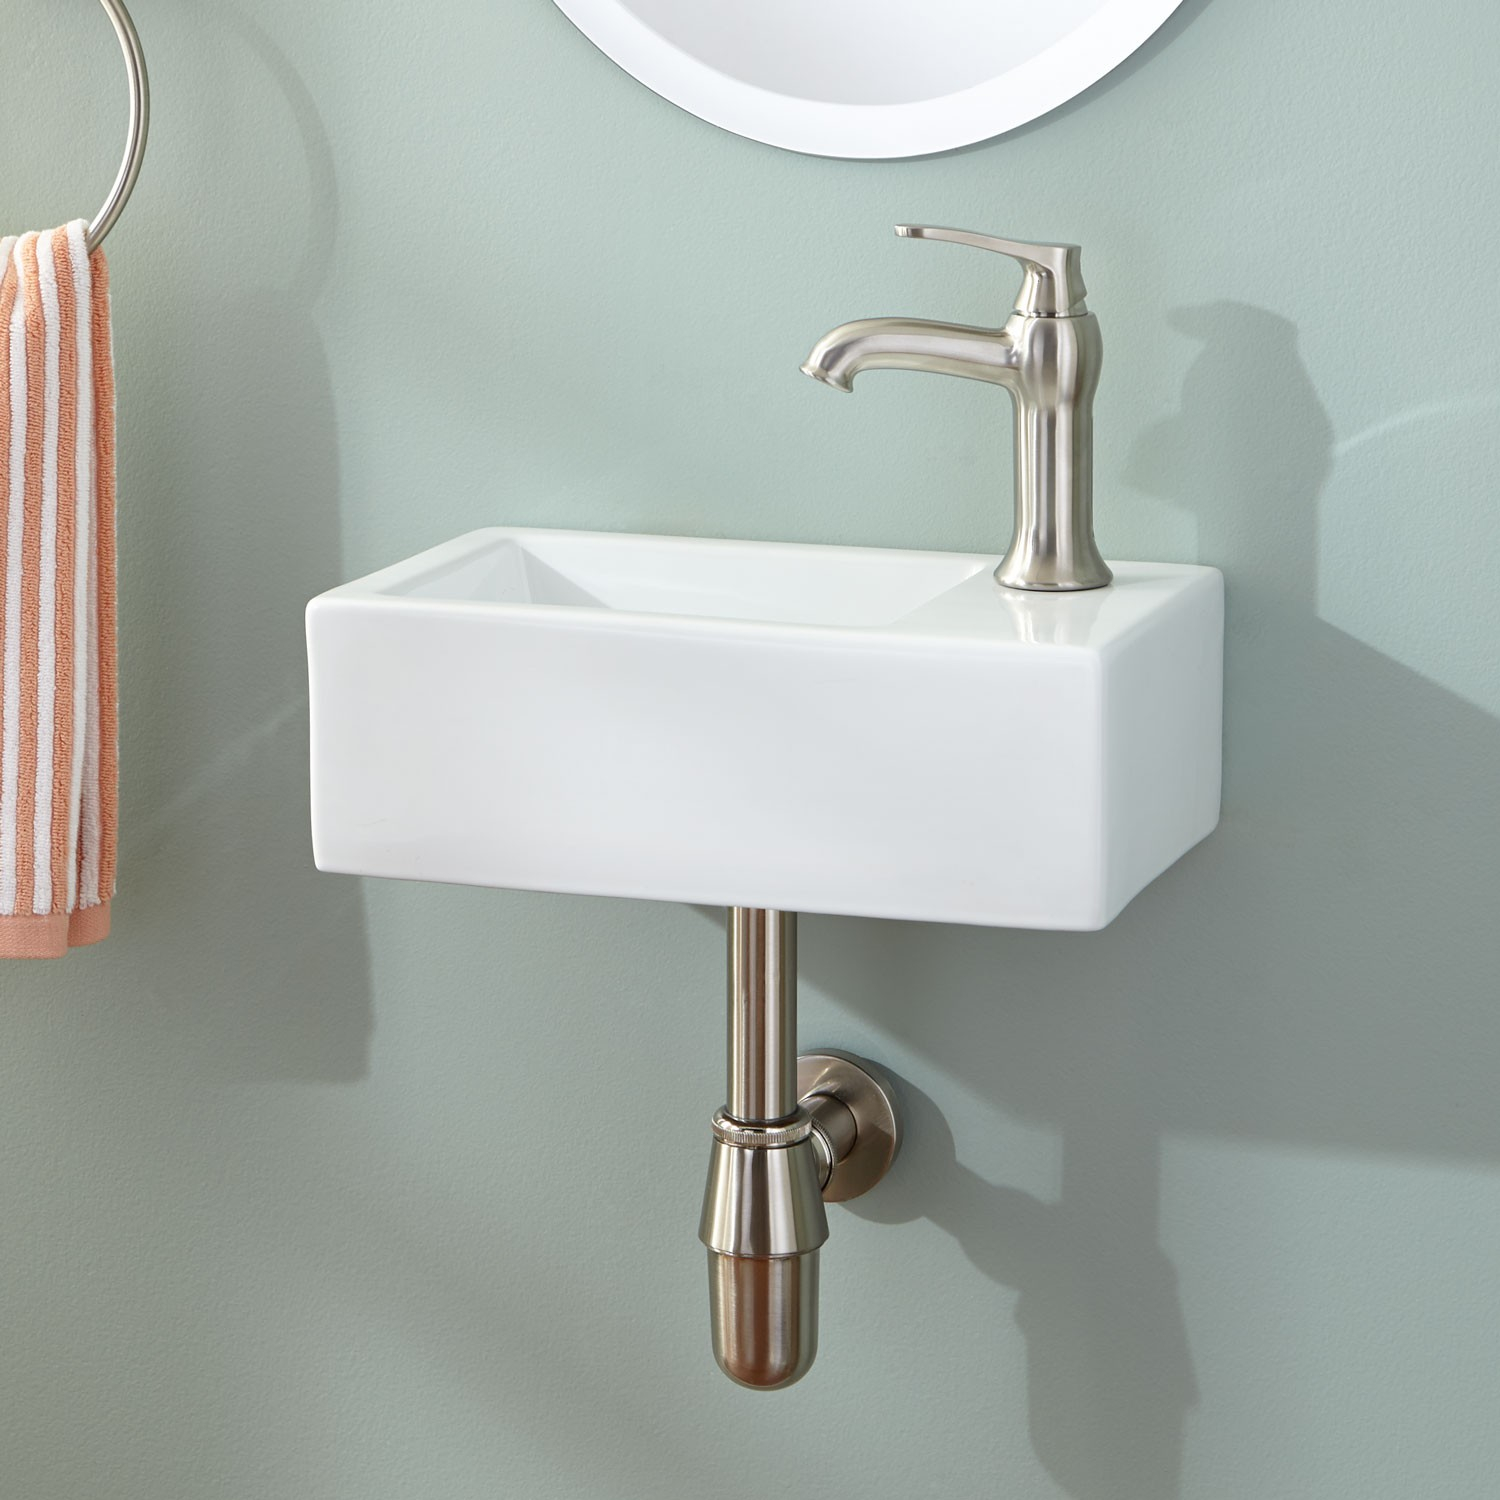 Bathroom Sink With Side Faucet Faucet Ideas Site